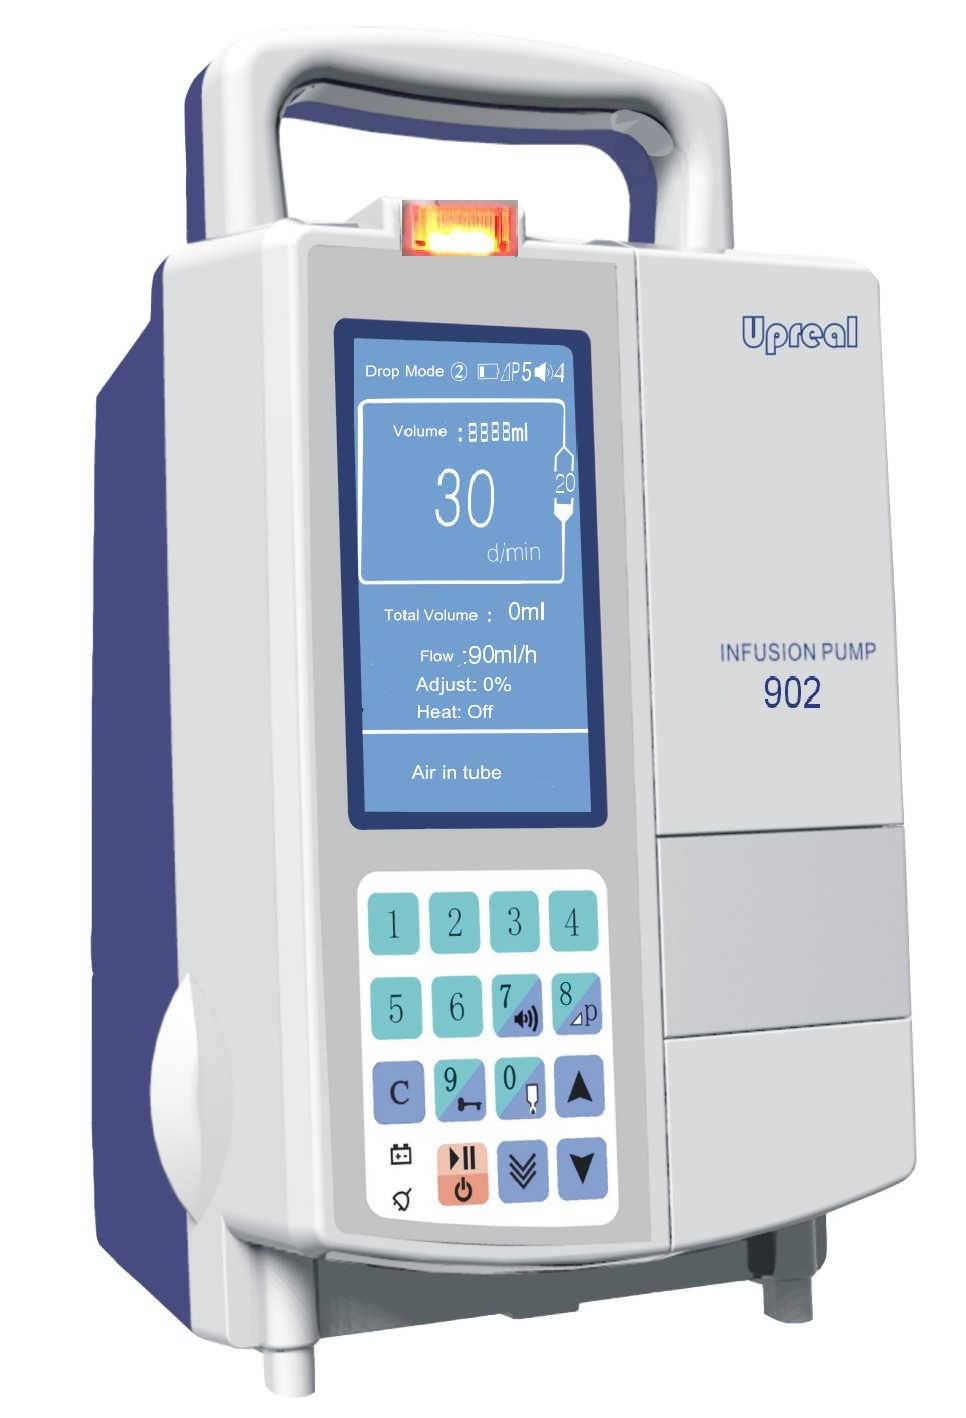 UPR-902 Infusion Pump with Warming System